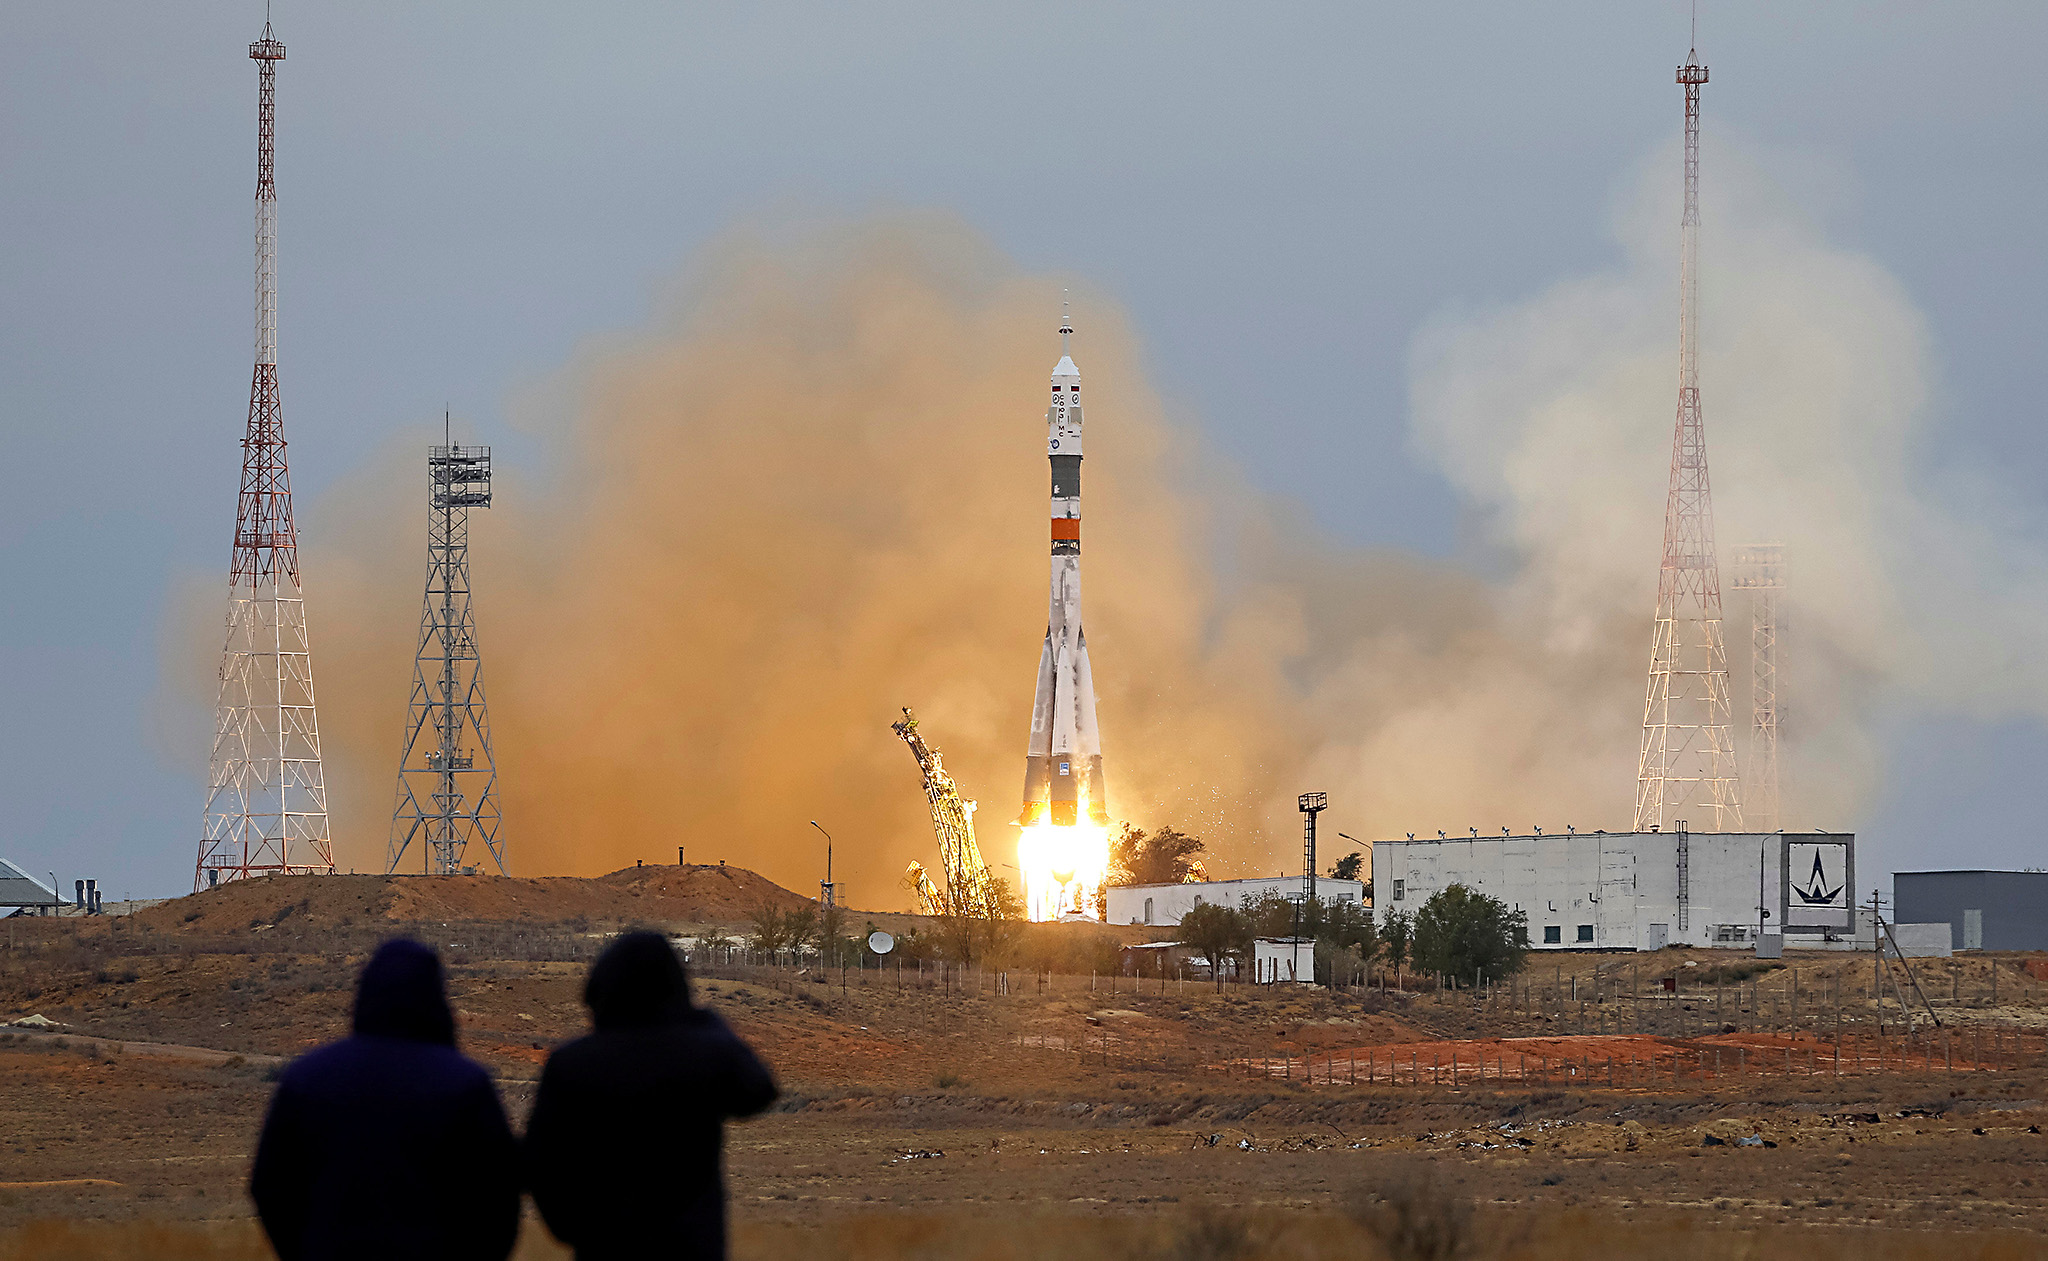 The Soyuz MS-02 spacecraft carrying the crew of Shane Kimbrough of the U.S., Sergey Ryzhikov and Andrey Borisenko of Russia blasts off to the International Space Station (ISS) from the launchpad at the Baikonur cosmodrome, Kazakhstan, October 19, 2016.  REUTERS/Shamil Zhumatov